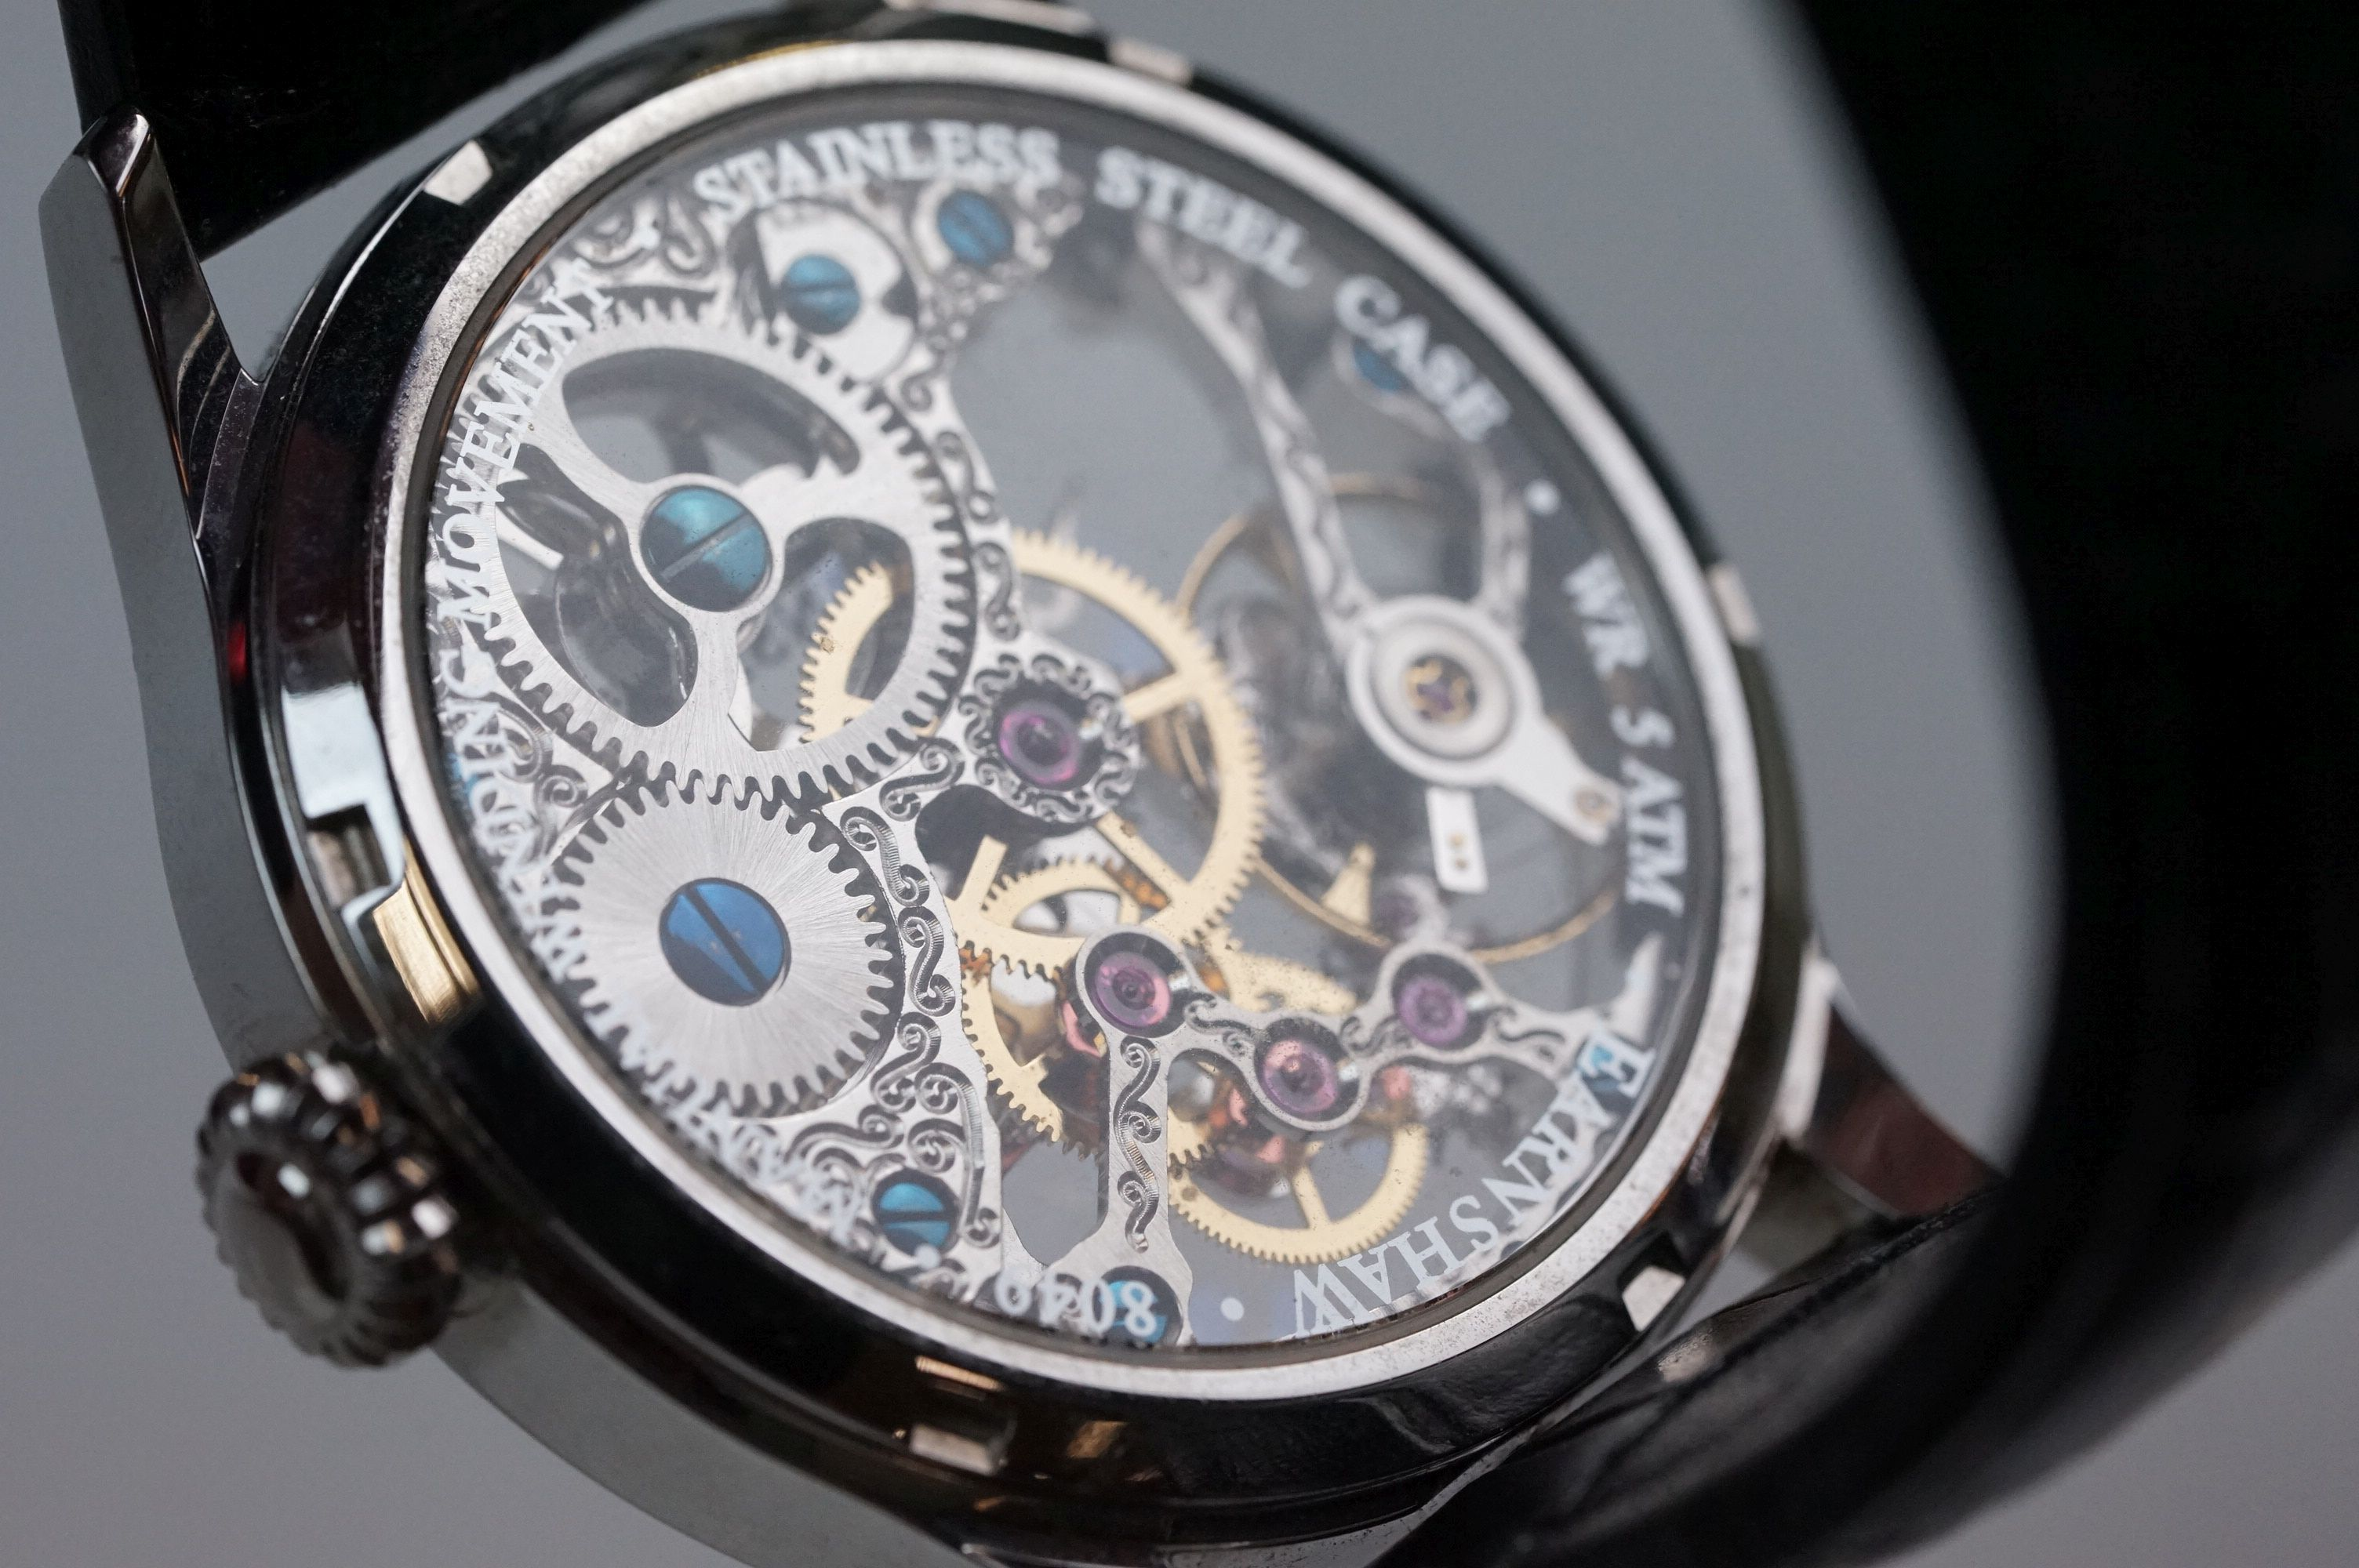 Earnshaw Gents wristwatch, skeleton face and dial, WR 5 ATM 8049, together with paperwork, box and - Image 7 of 9